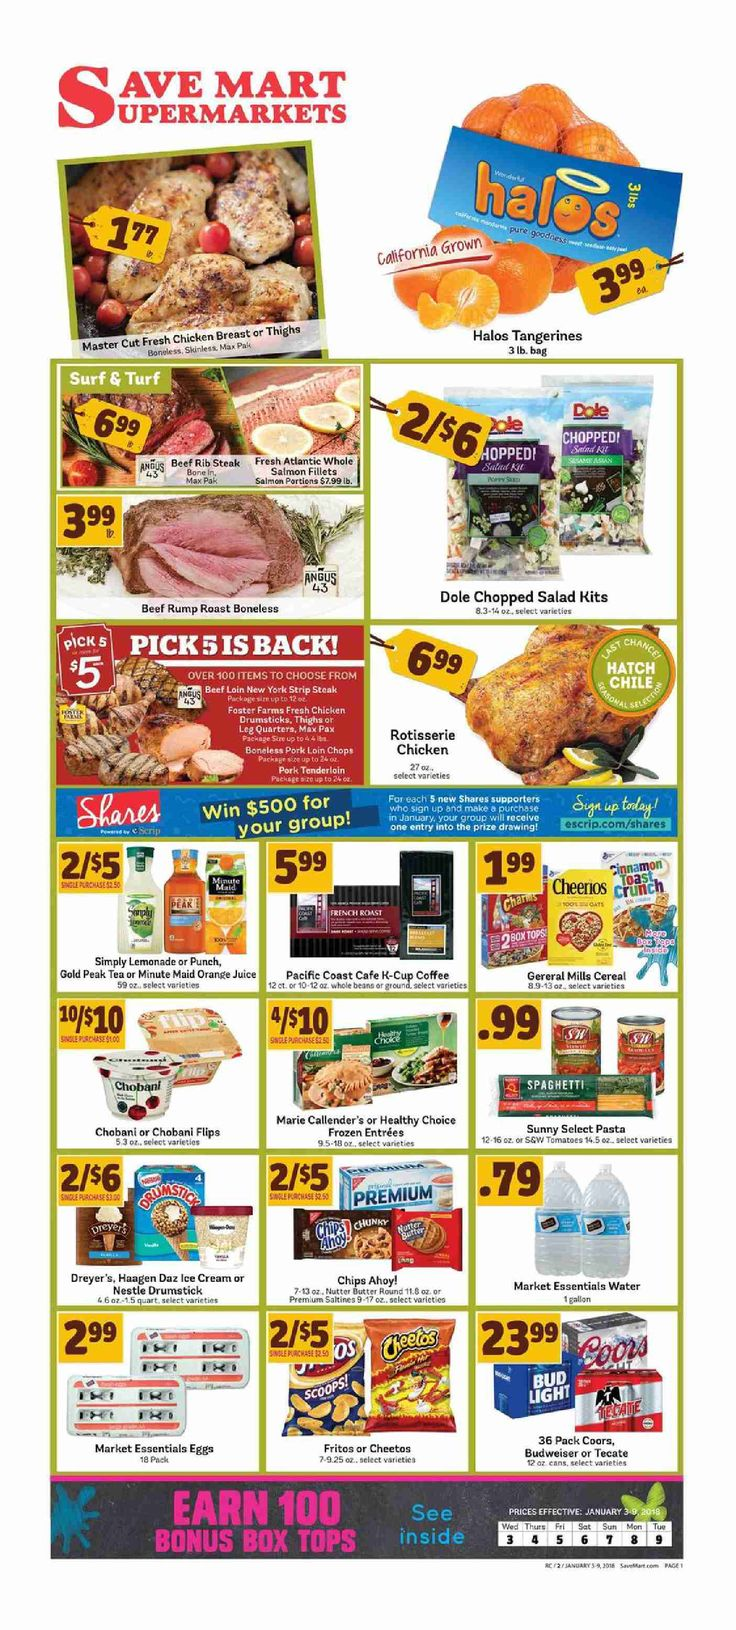 Save Mart Weekly ad January 3 - 9, 2018 - http://www.olcatalog.com/save-mart/save-mart-weekly-ad.html